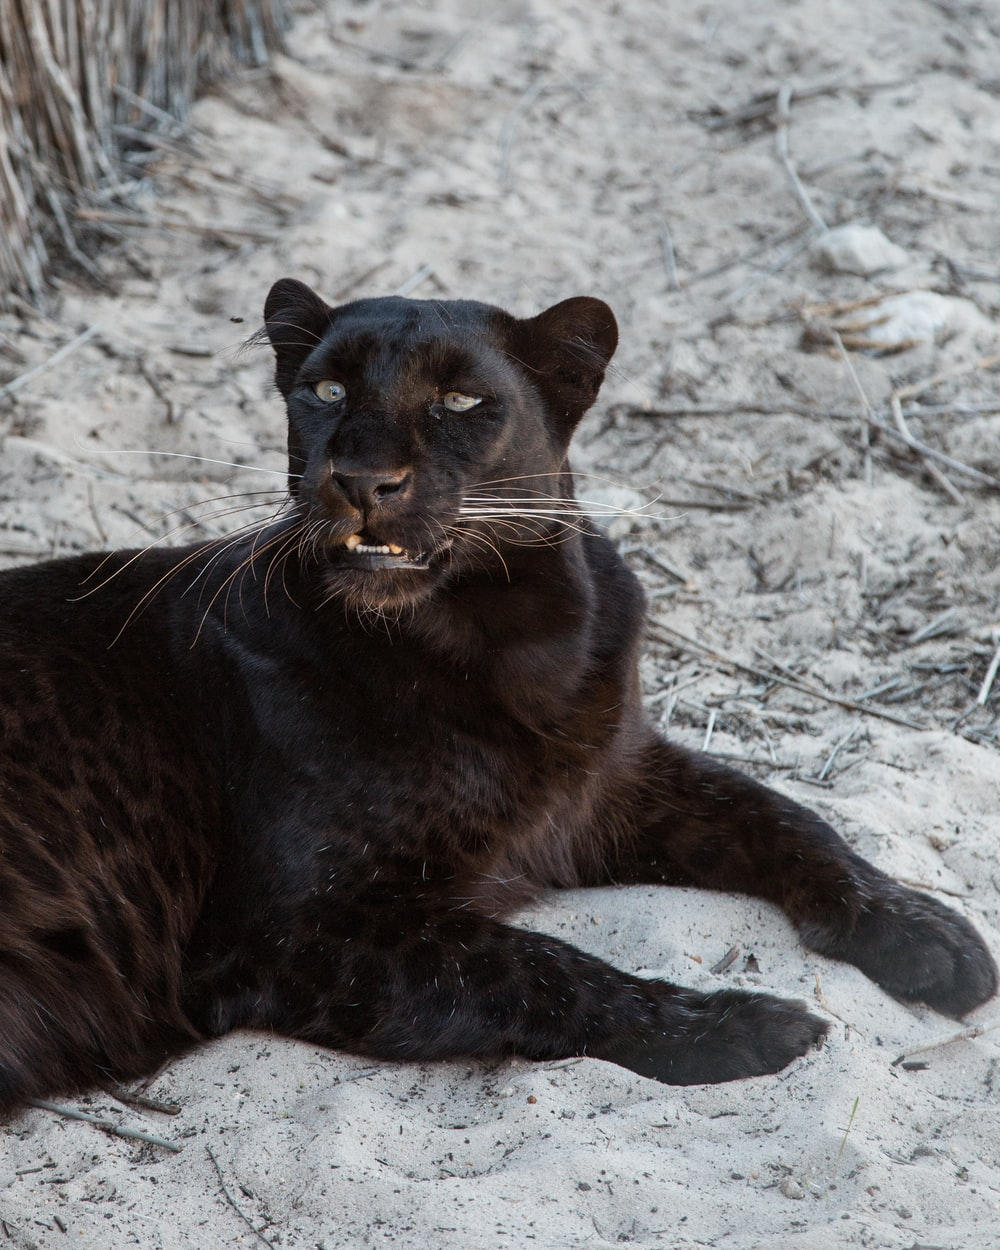 Black Panthers Panthers And Black On Pinterest: Download Free Images On Unsplash